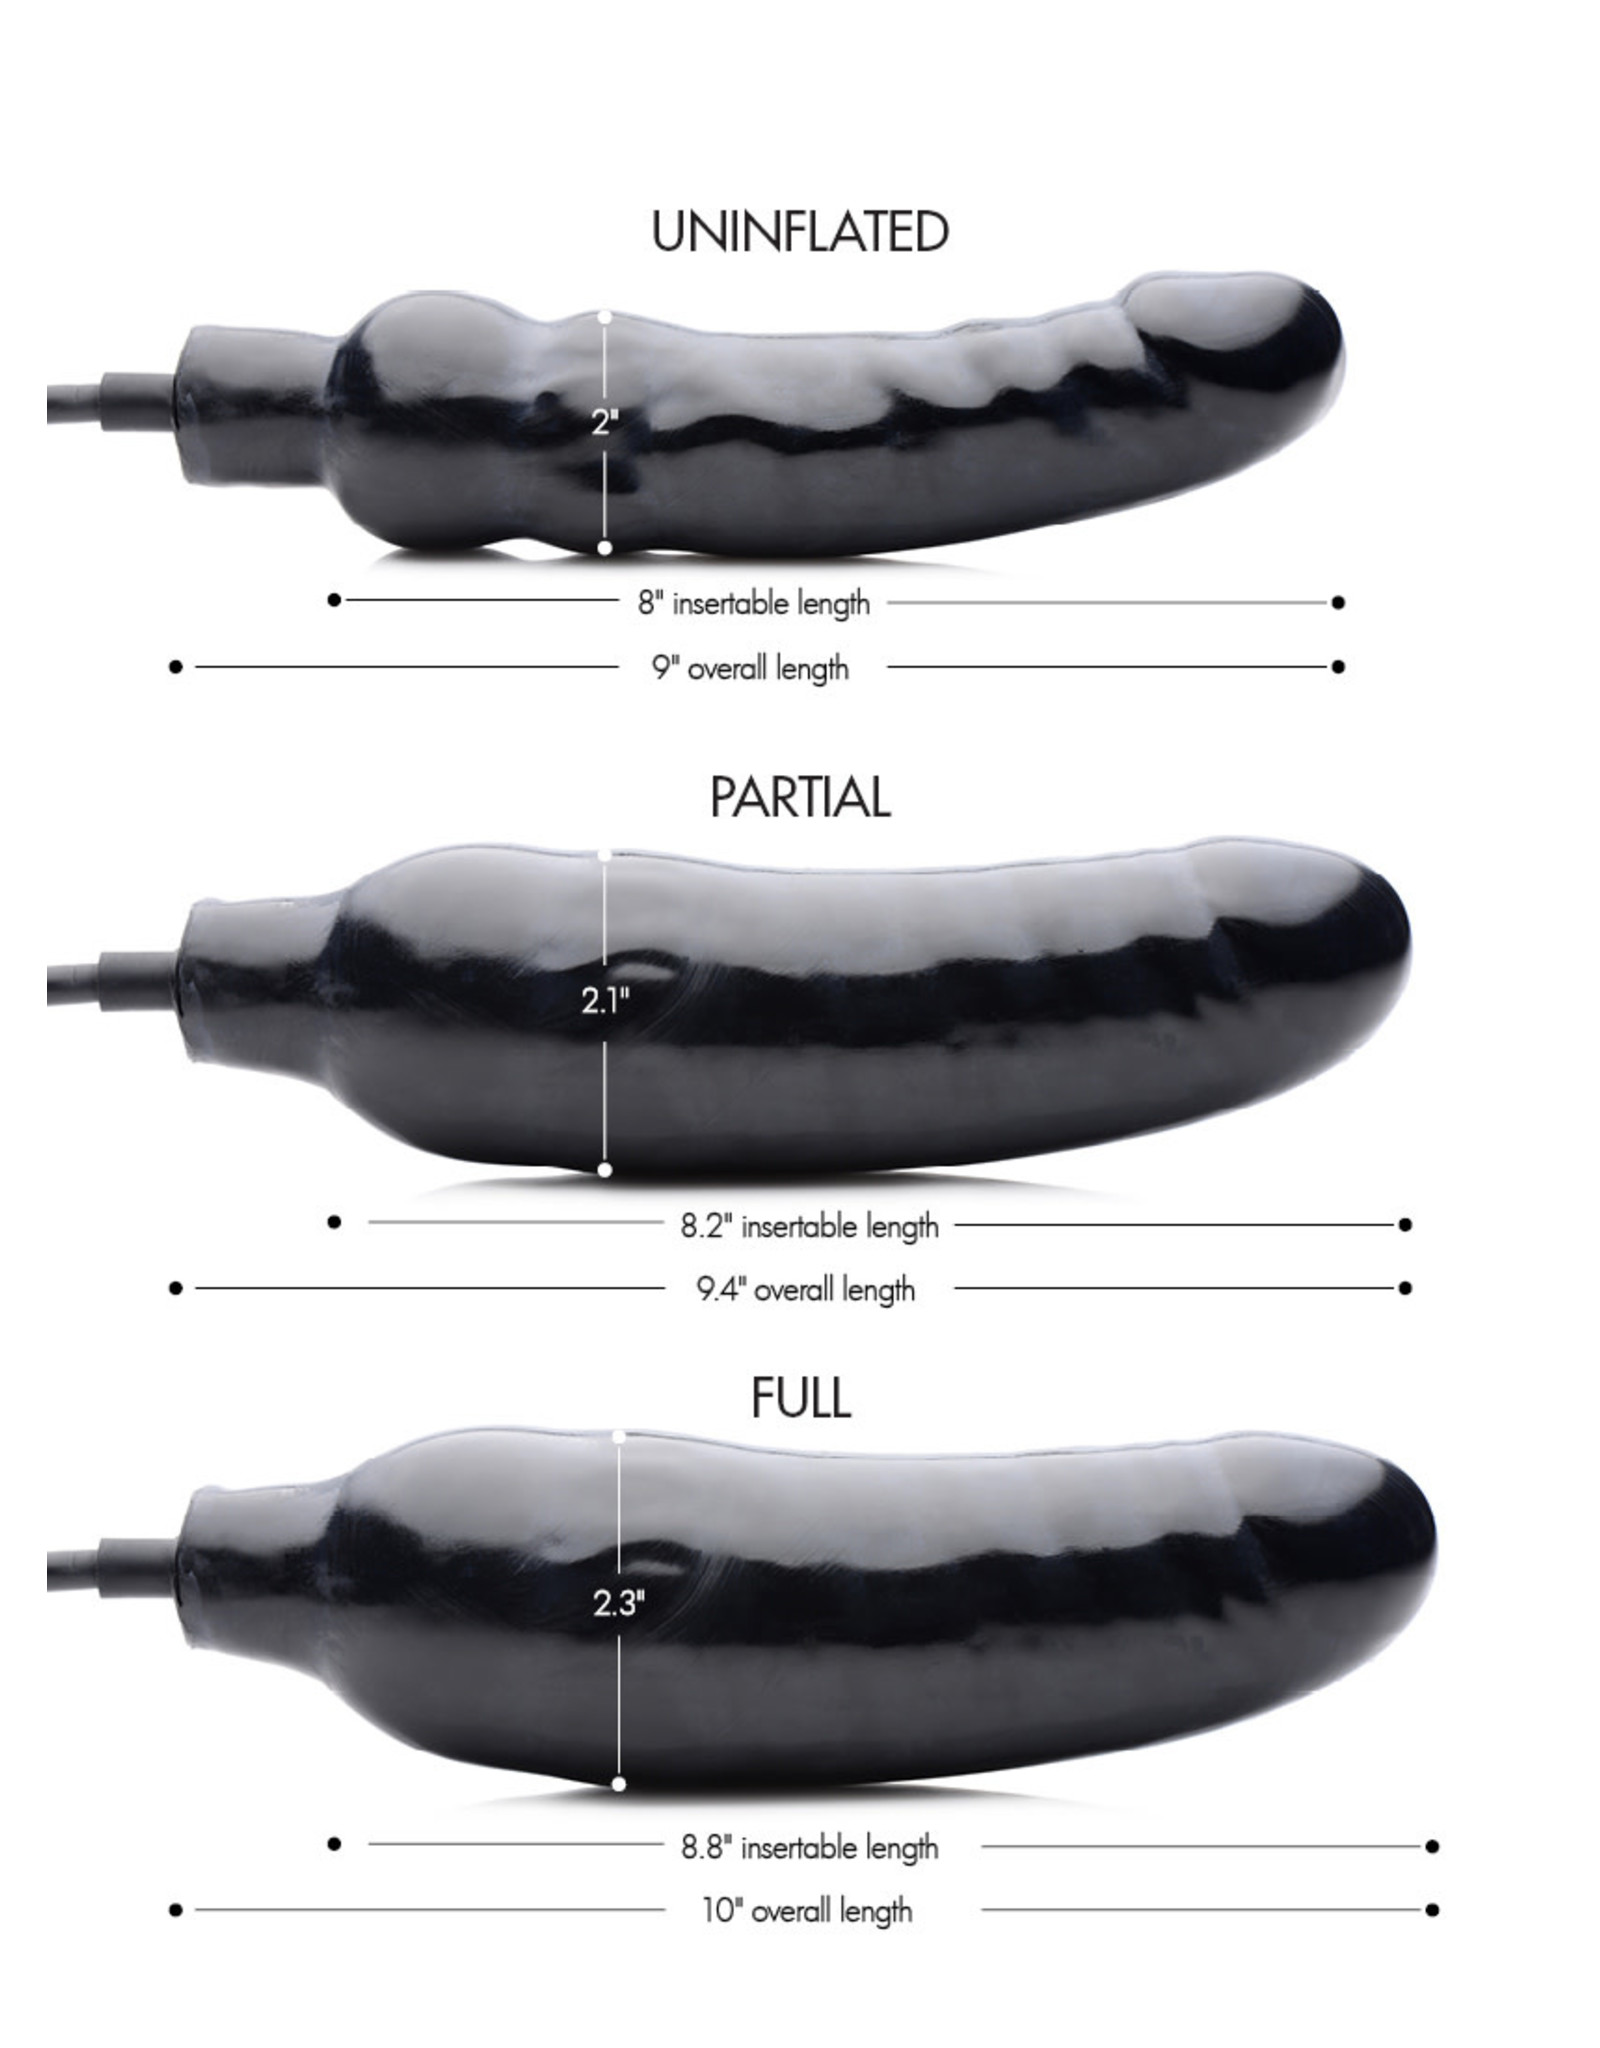 MASTER SERIES PRIMAL INFLATABLE DILDO